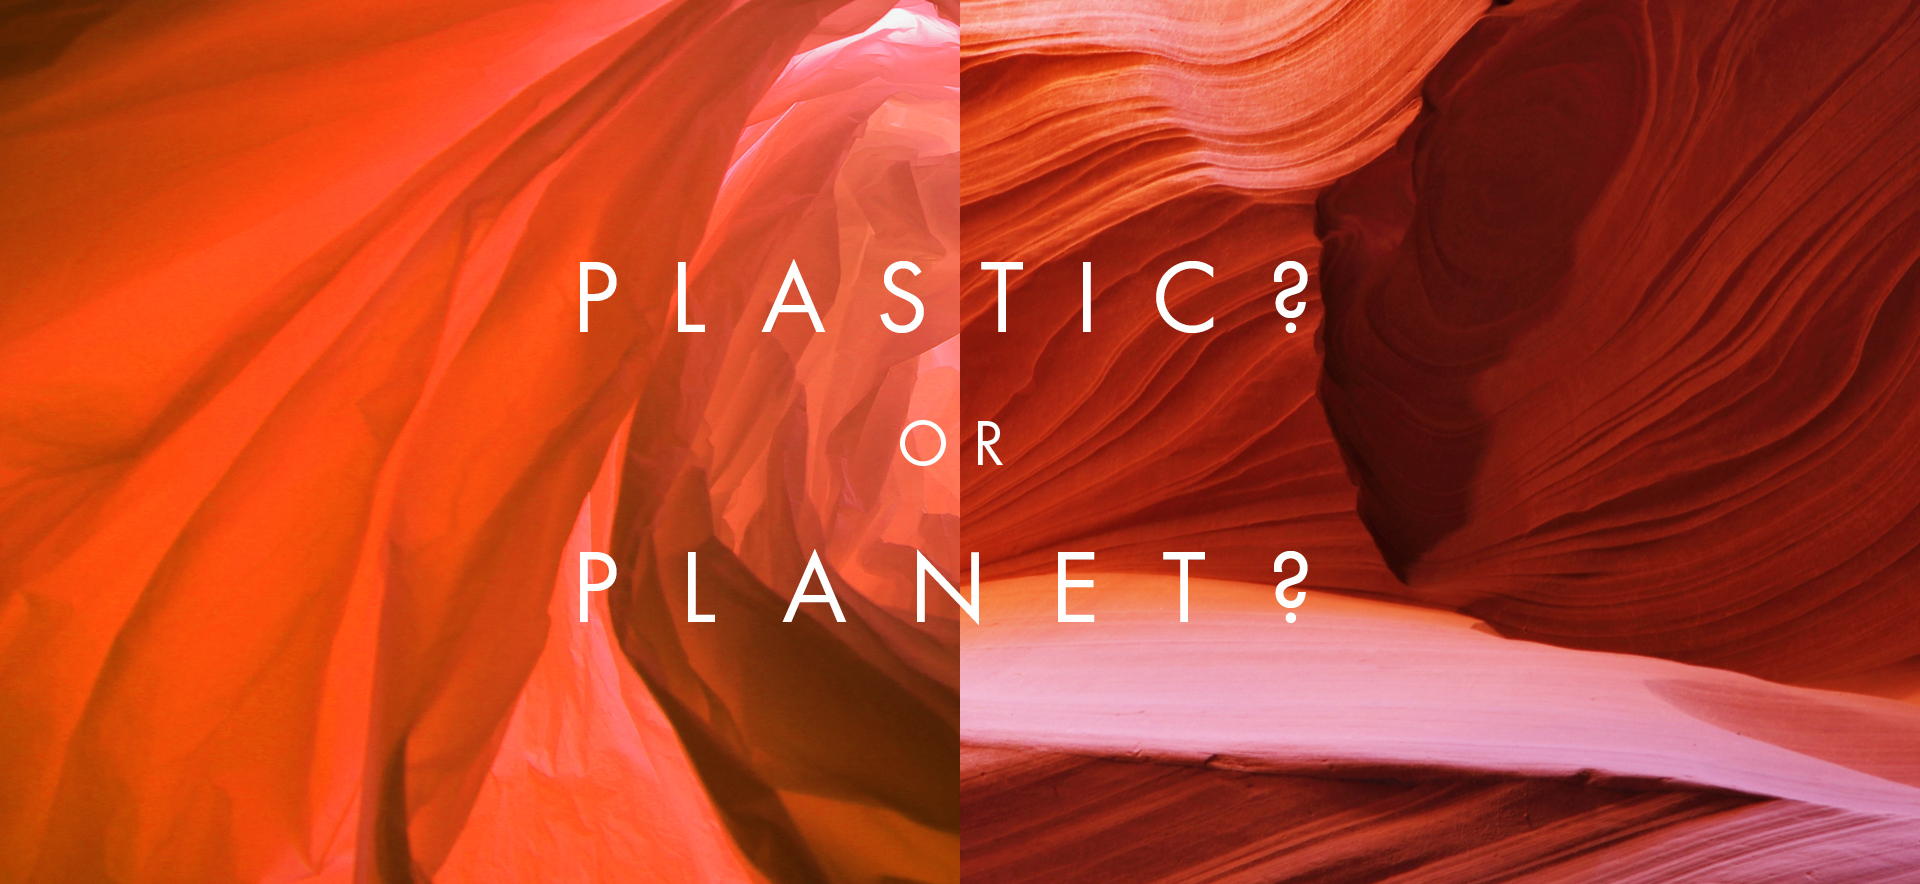 Plastic or Planet - red plastics and red rock formations